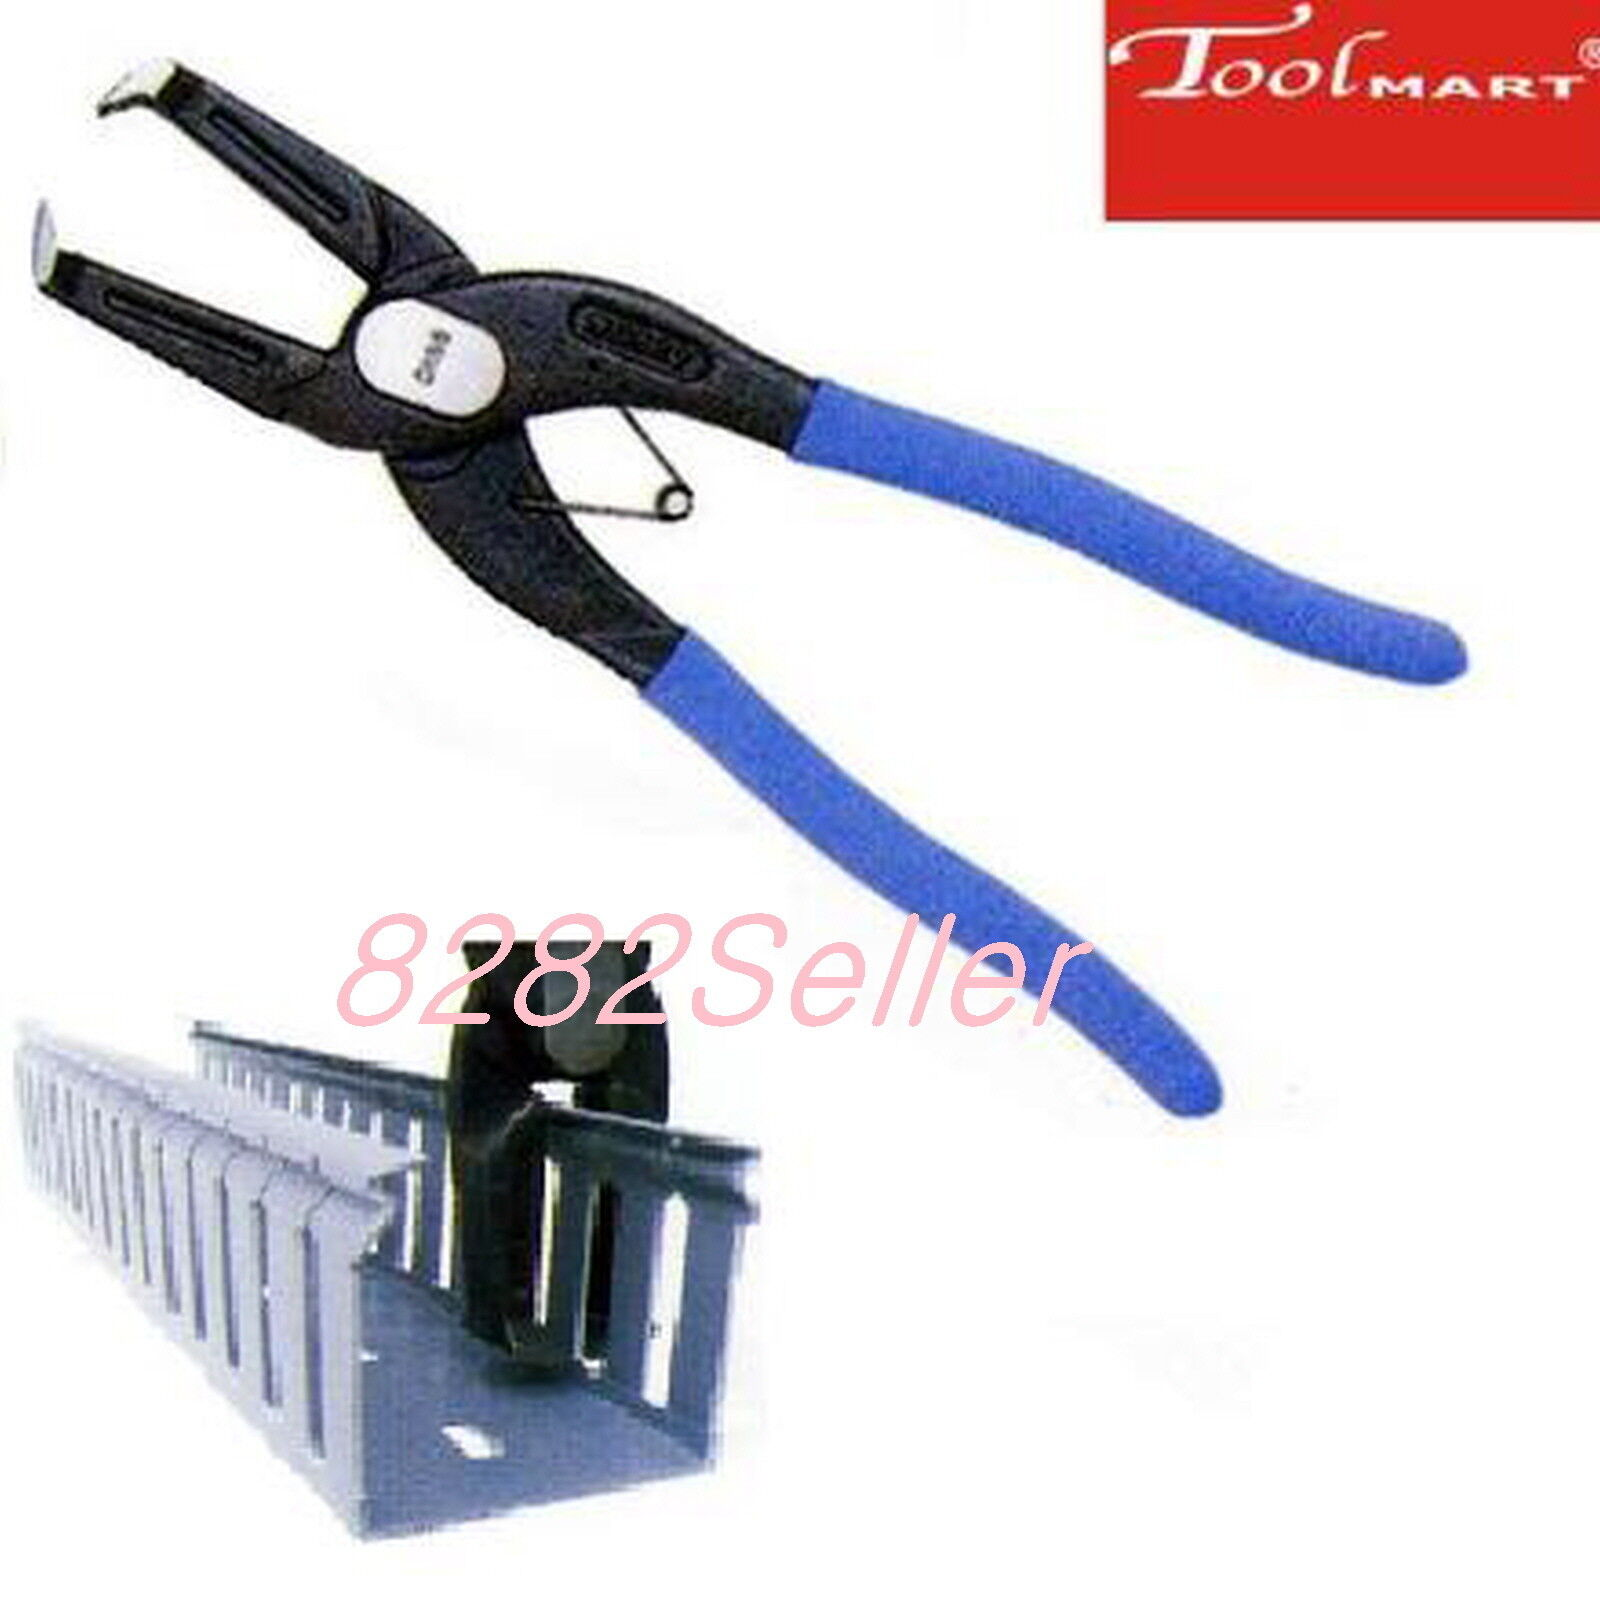 DK65 Blade Hand Held Wiring Nipper Duct Cutter for Plastic MERRY Genuine 65mm